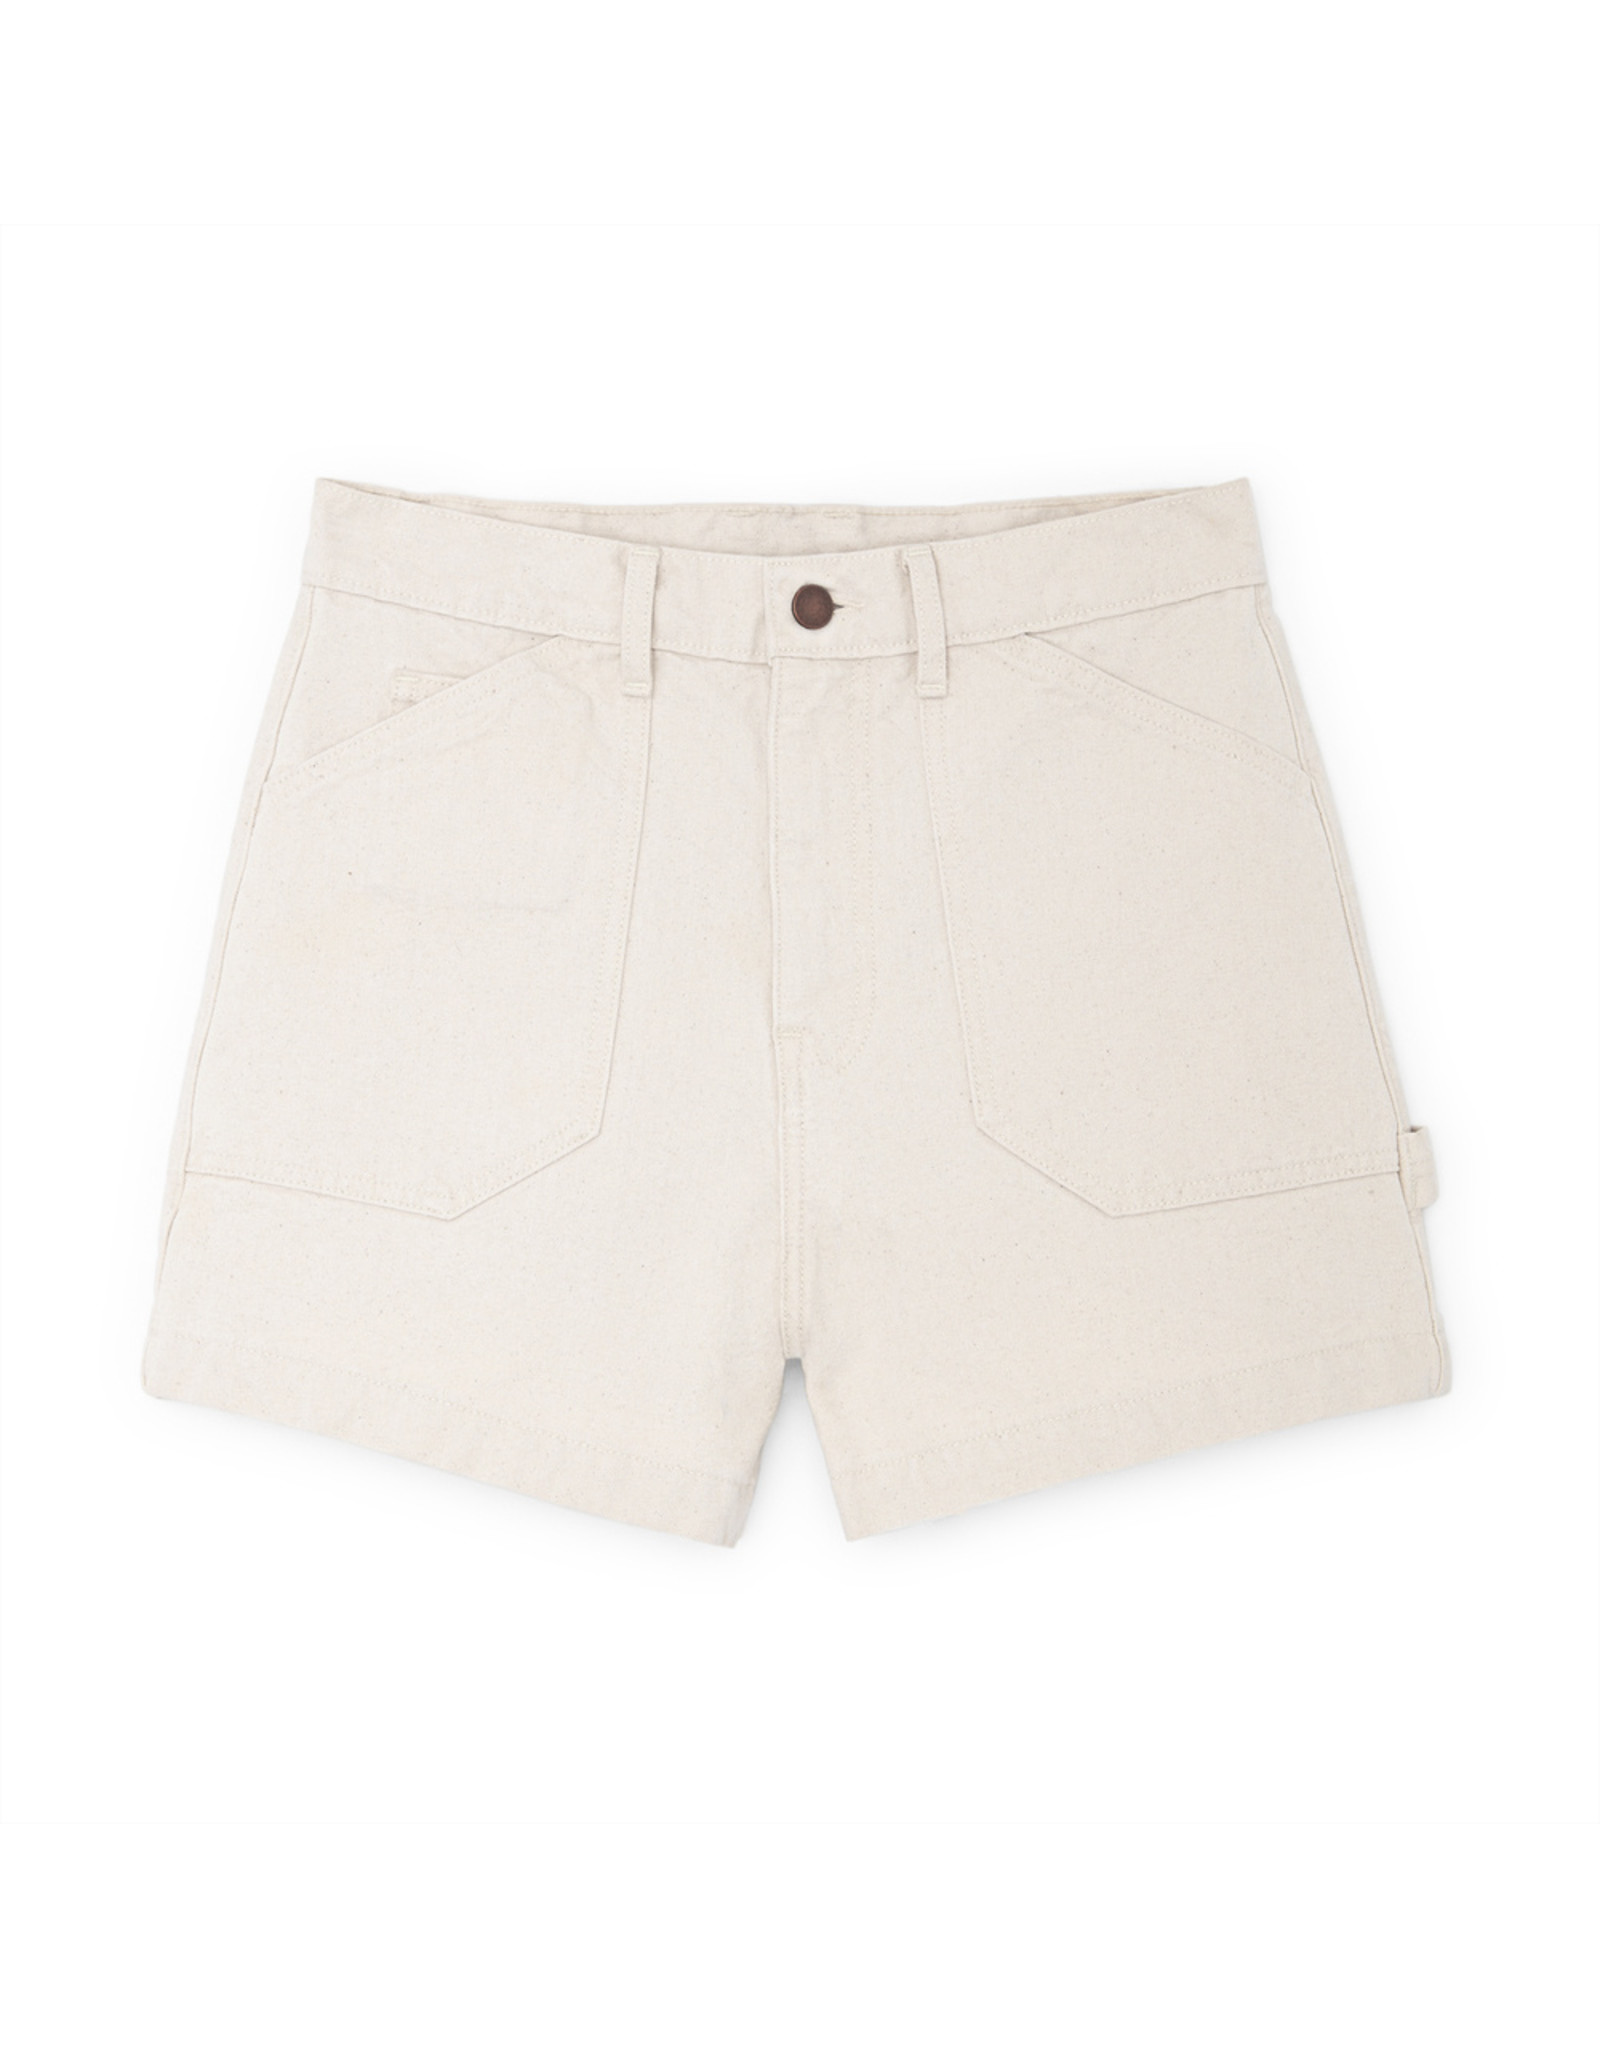 G. Label G. Label Josh Workwear Short (Color: Natural, Size: 28)